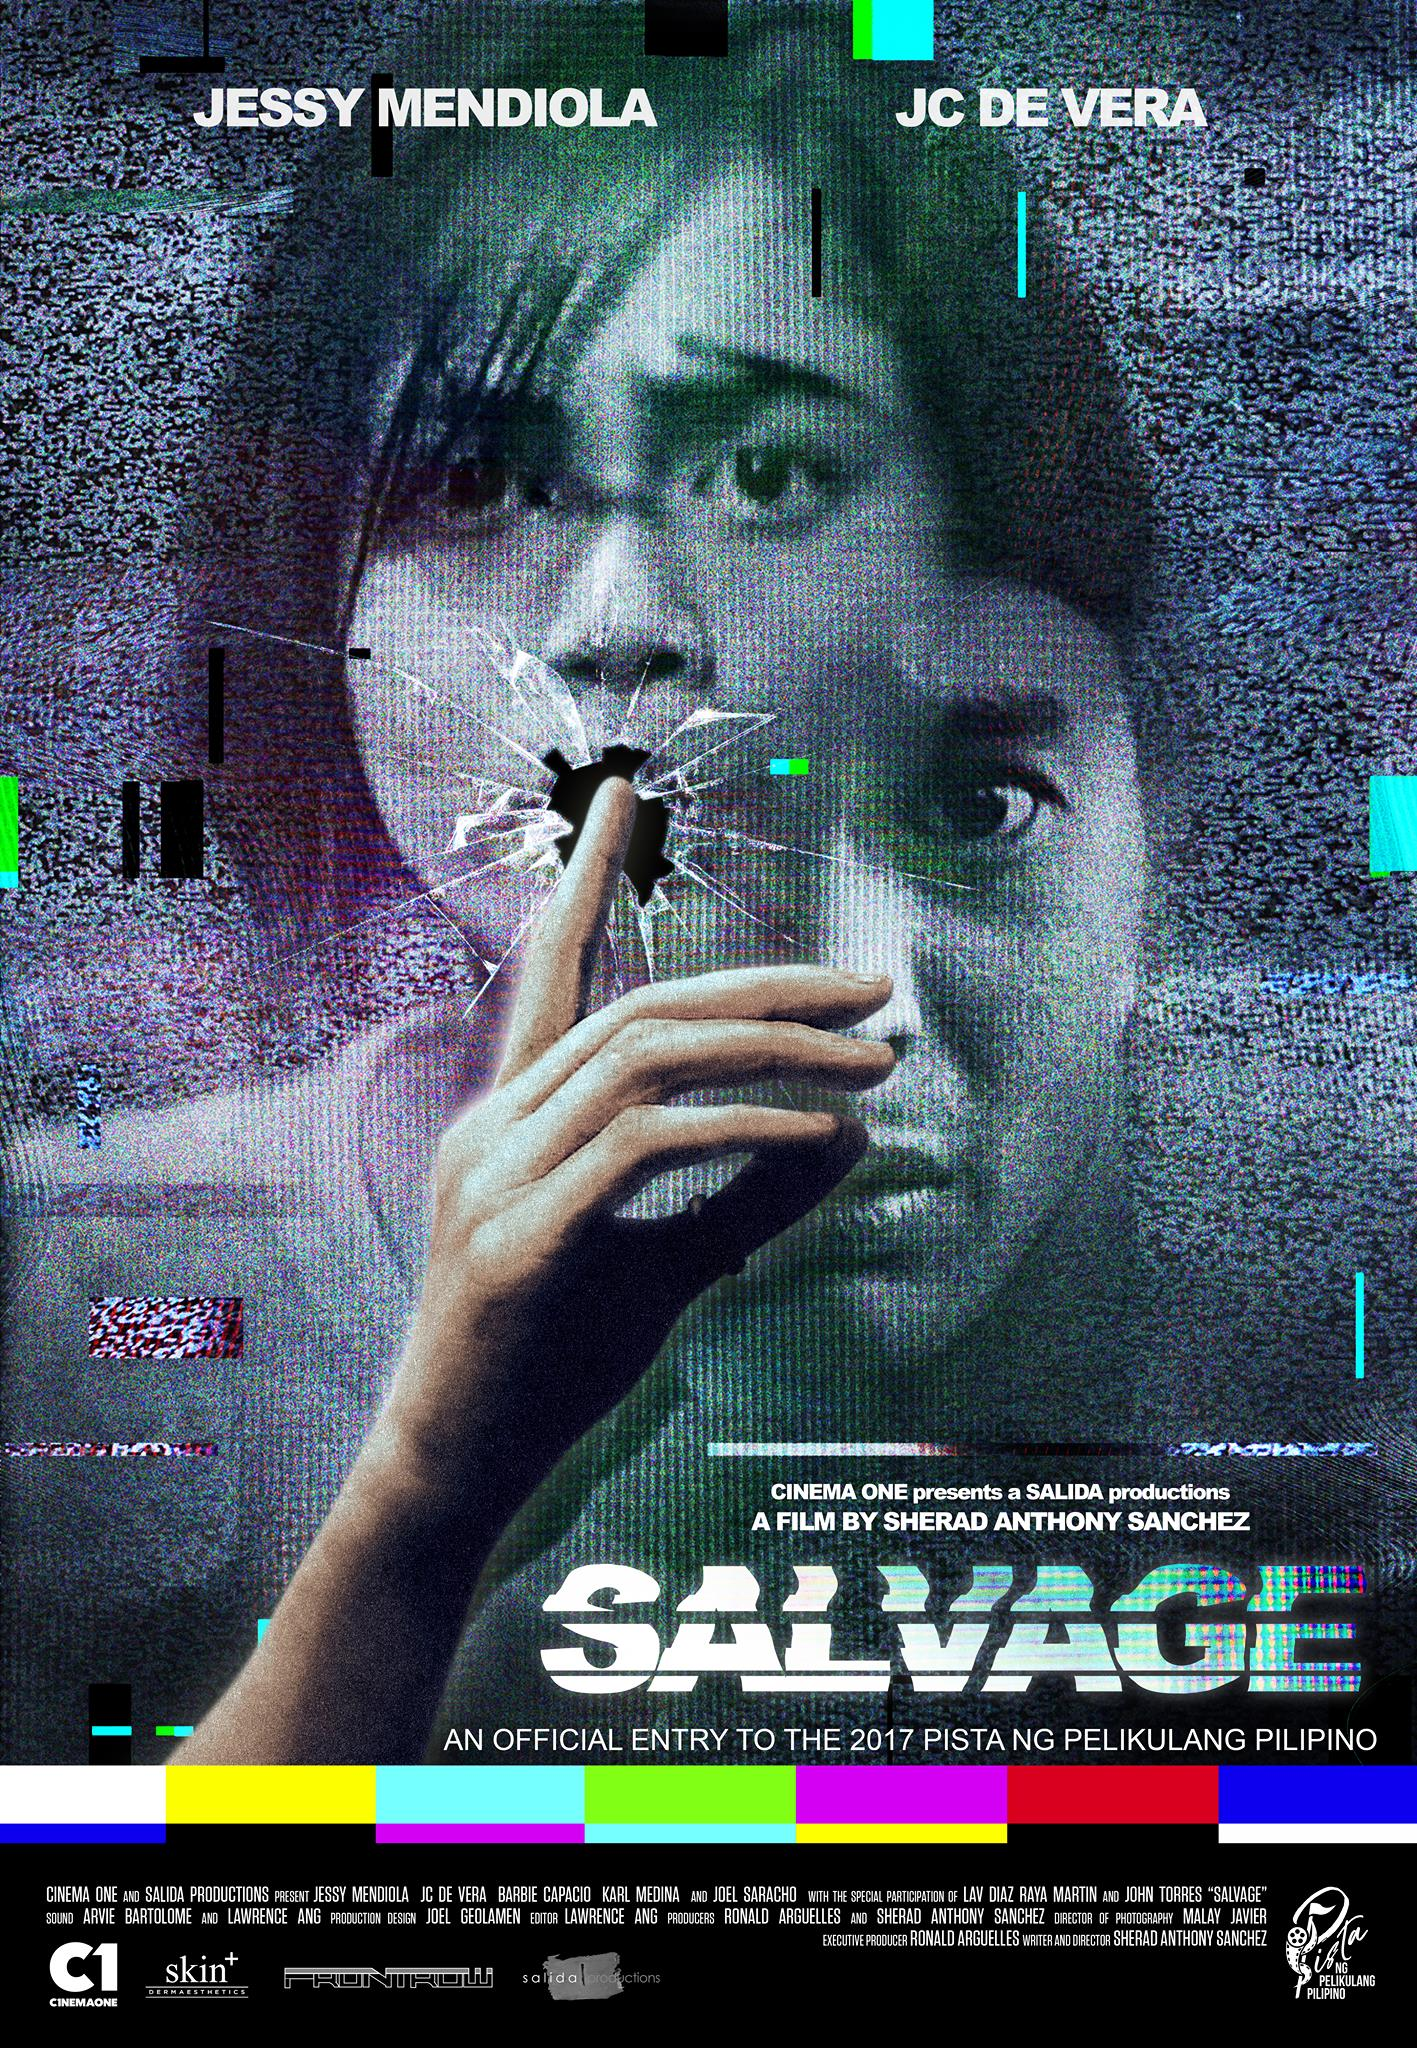 CinemaBravo Like This Page · 23 hrs · • Salvage Film by Sherad Anthony Sanchez An official entry to the 2017 Pista ng Pelikulang Pilipino which will run from August 16 to 22 IN ALL CINEMAS NATIONWIDE. (No foreign films will be shown in regular theaters.) — 150 PHP (for students in Metro Manila) — 100 PHP (for students outside Metro Manila) — 4+1 promo (for regular-priced tickets) — Regular ticket prices depend on the cinema TRAILER FOR SALVAGE: https://www.facebook.com/cinemabravo/videos/1419785134736604/